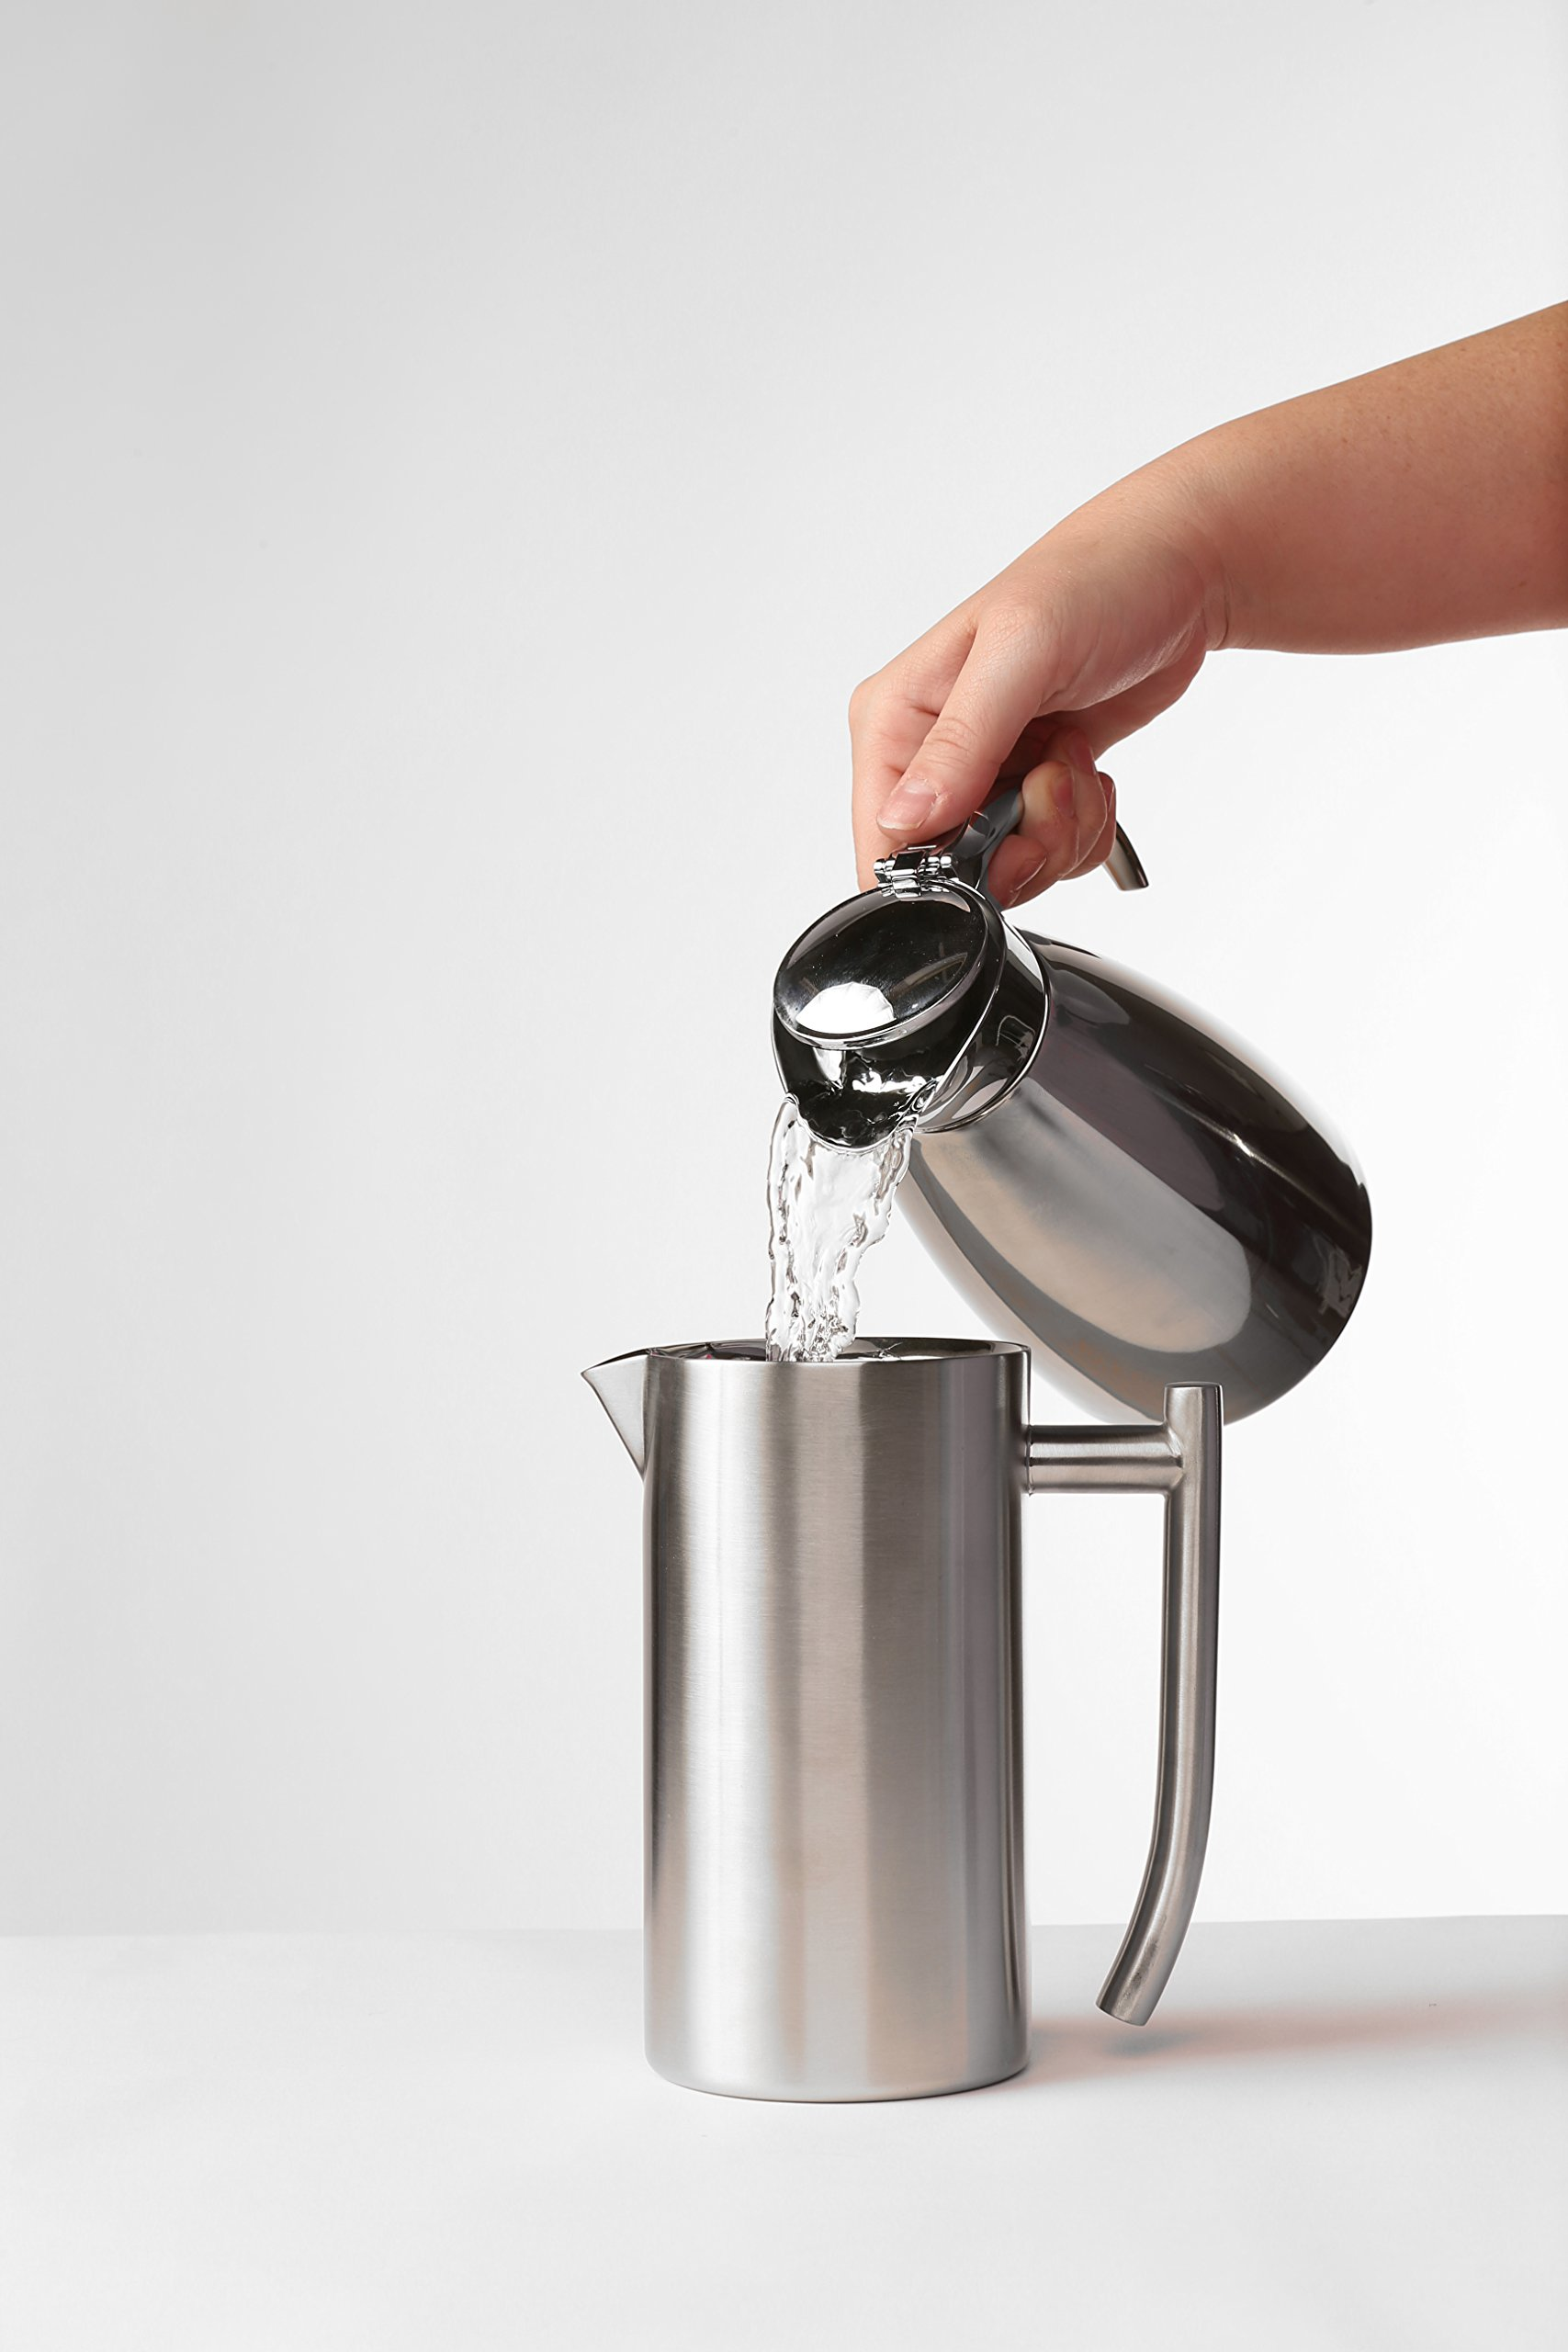 Frieling USA 131 Double Wall Stainless Steel French Press Coffee Maker with Patented Dual Screen, 44-Ounce, Brushed by Frieling (Image #5)